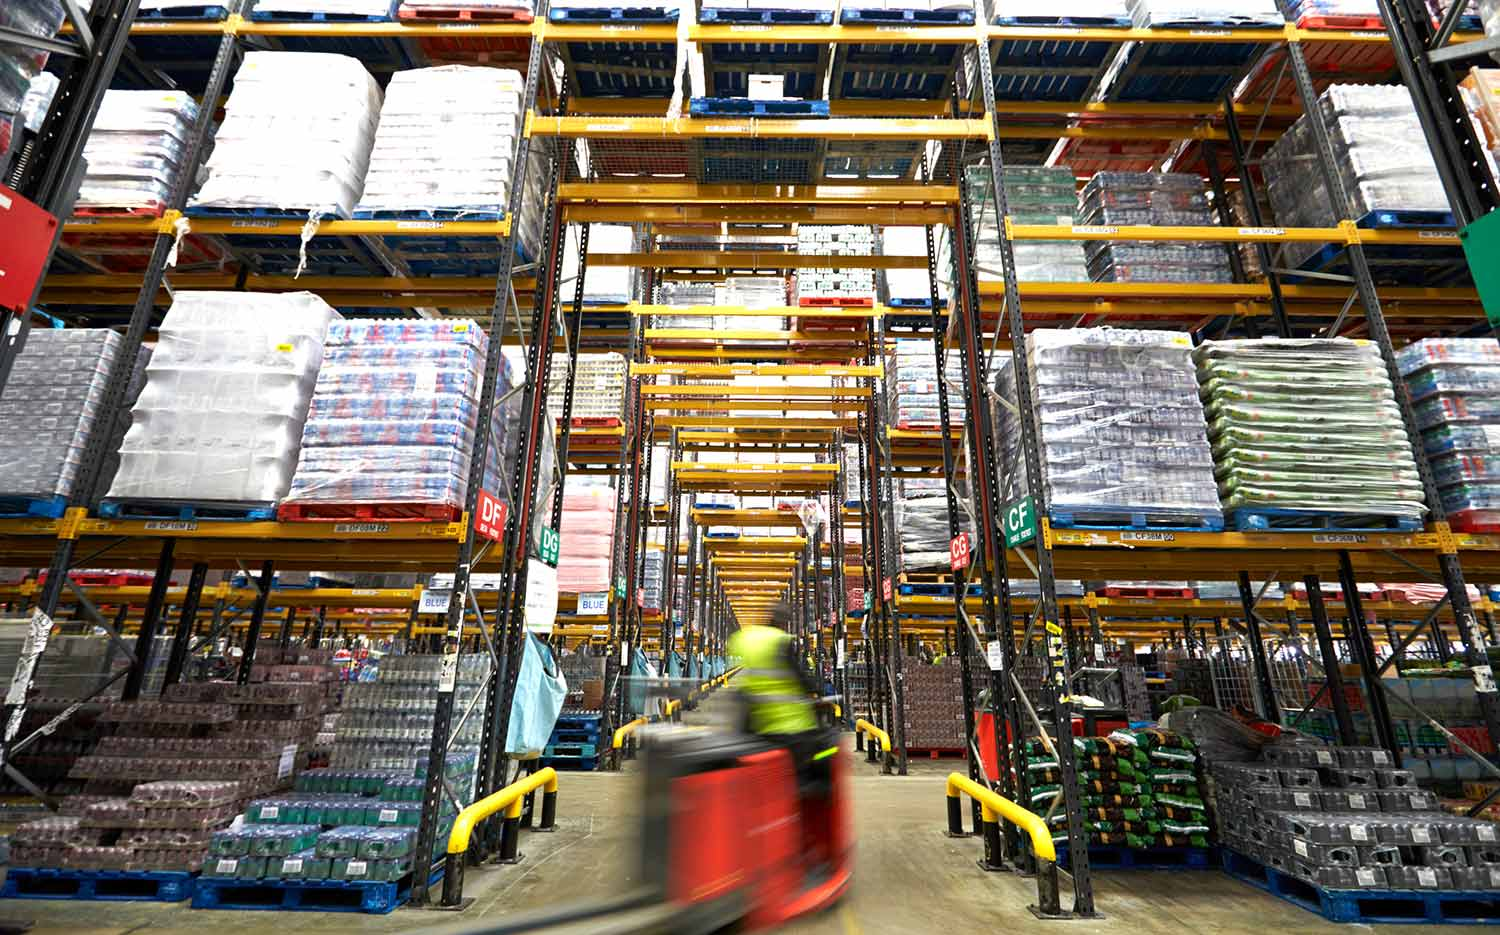 Pallet Racking Systems Guide from Carolina Handling